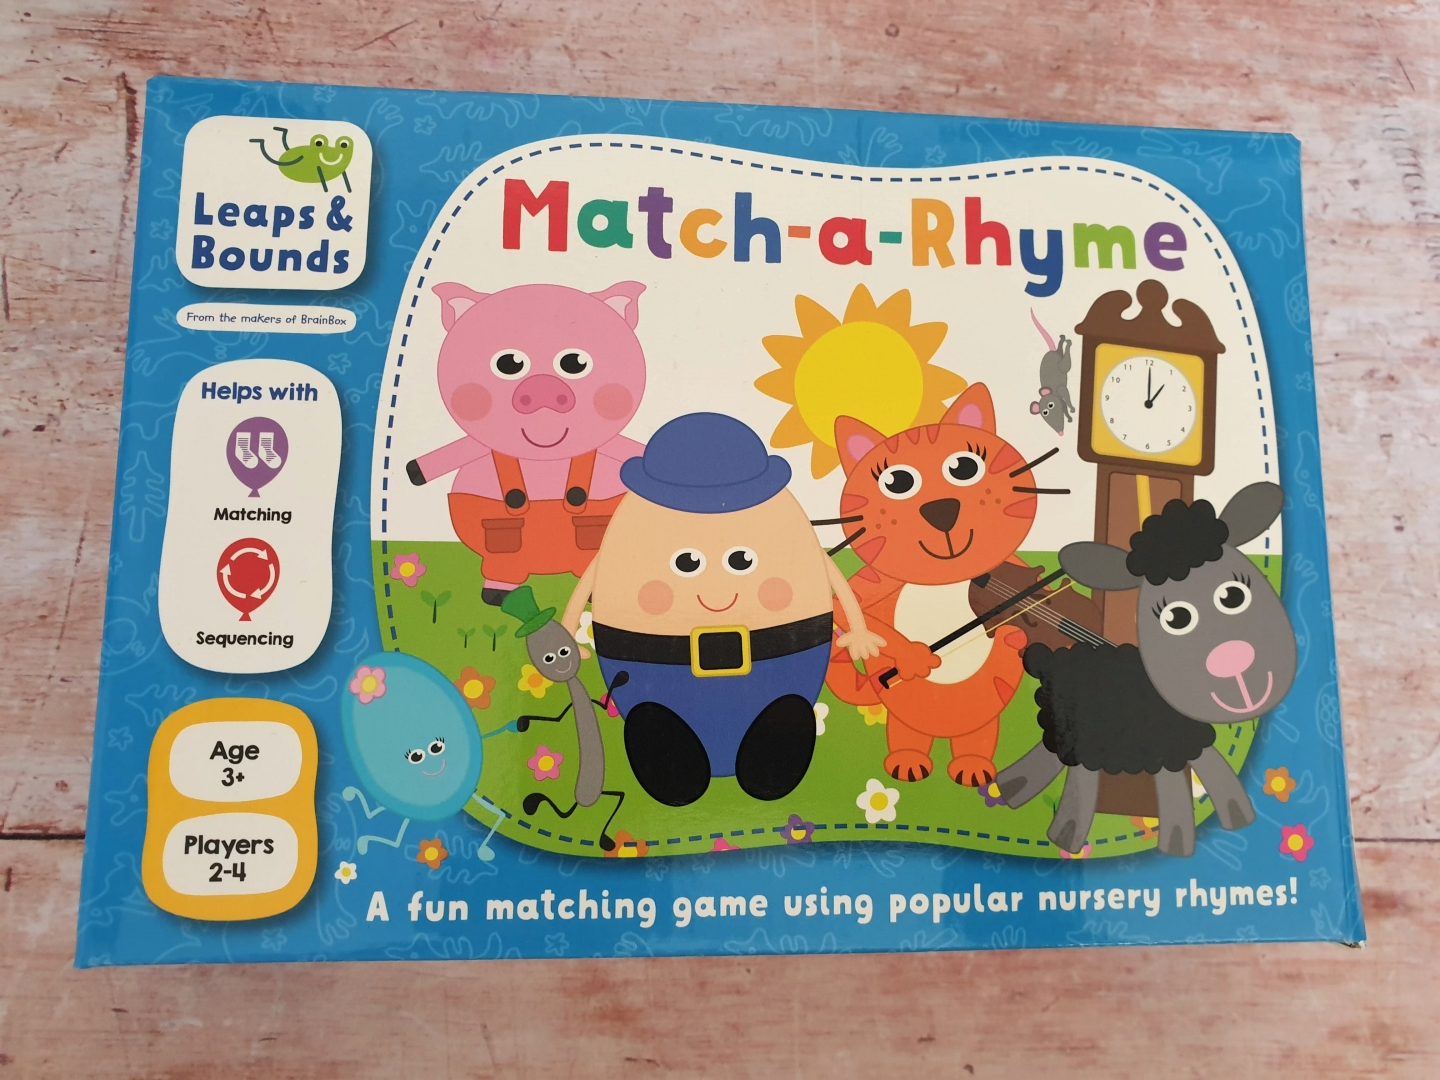 Match-a-Rhyme game for toddlers and preschoolers